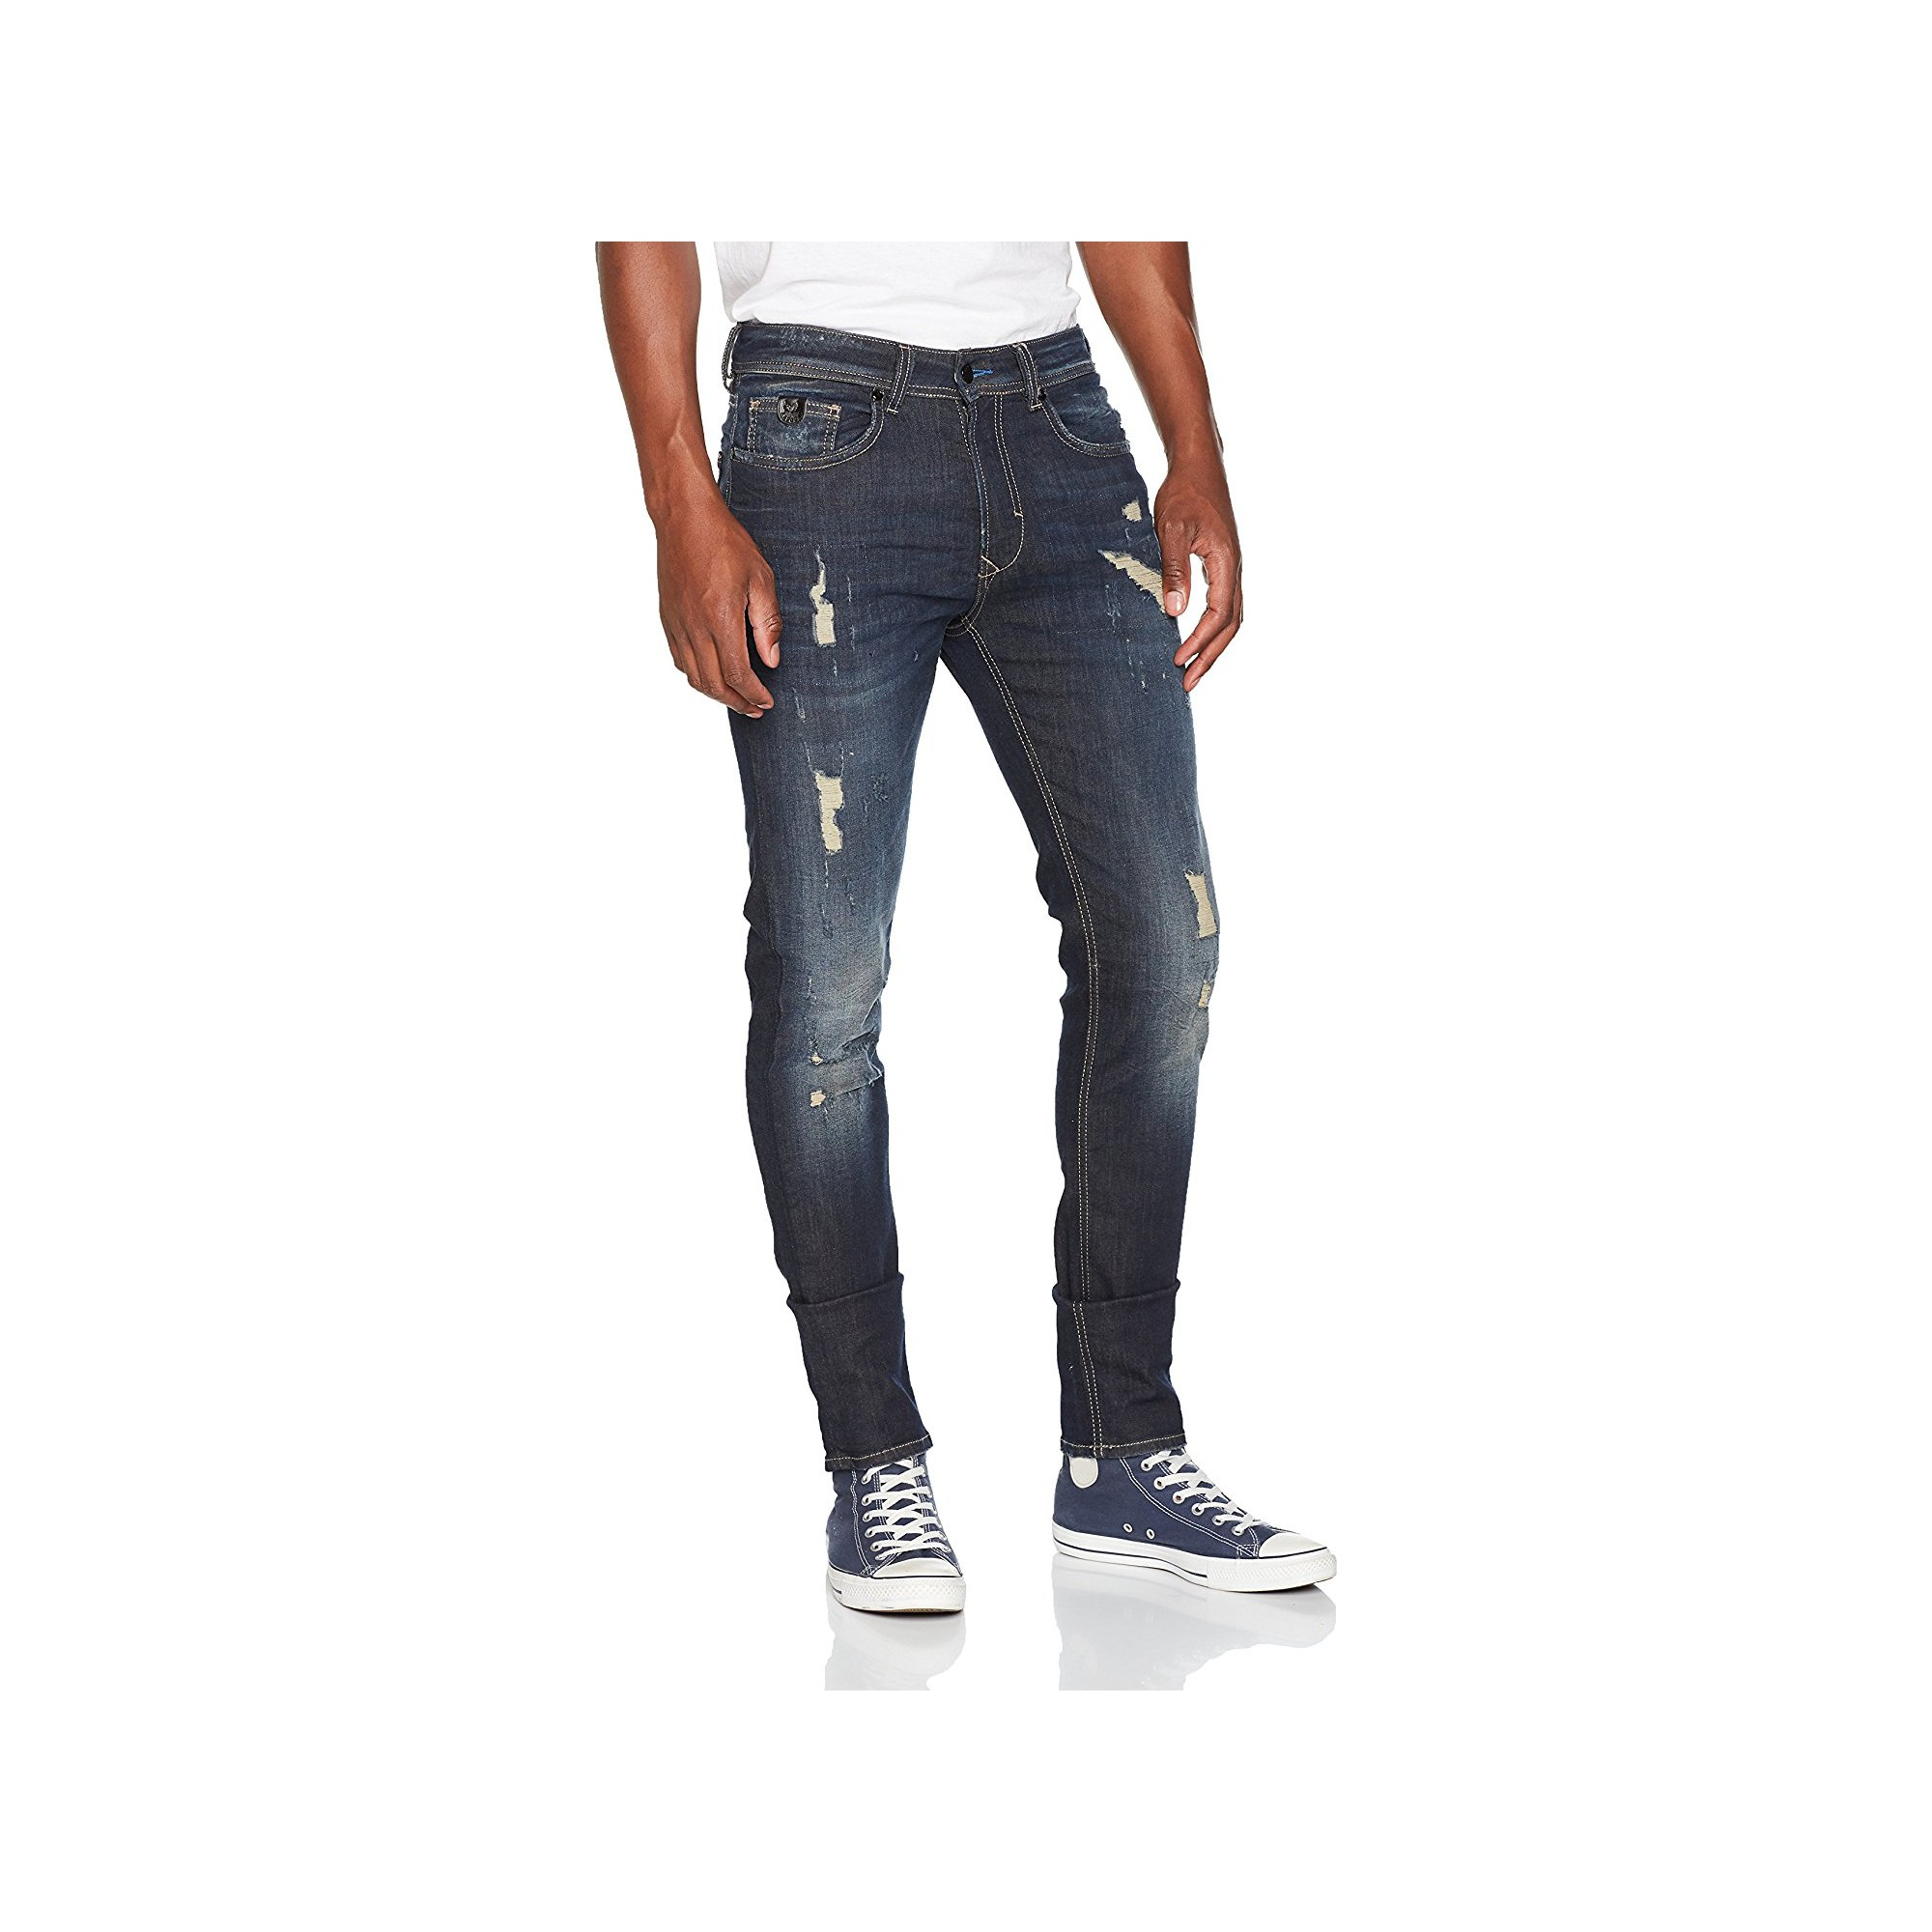 In Size 32/30 Fashionable G-star Raw 5620 Elwood Slim Fit Jean Style;